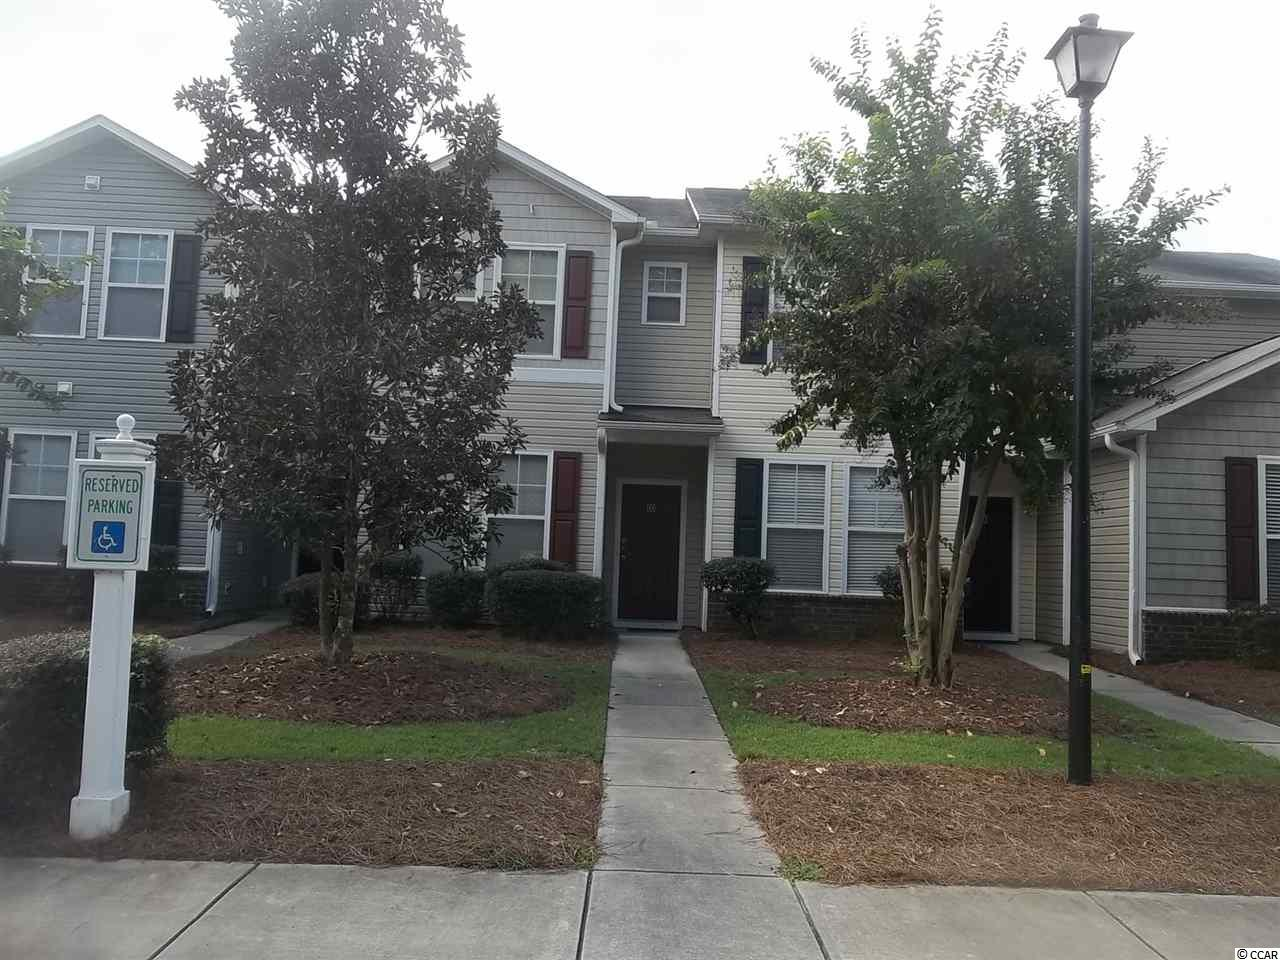 2 bedrooms upstairs with a bath off each, the half bath is downstairs.  Downstairs is living room, dining room and kitchen.  The kitchen leads to a back porch that overlooks a lake.  Rental income immediately.  Renter is in place 24 hours to show.